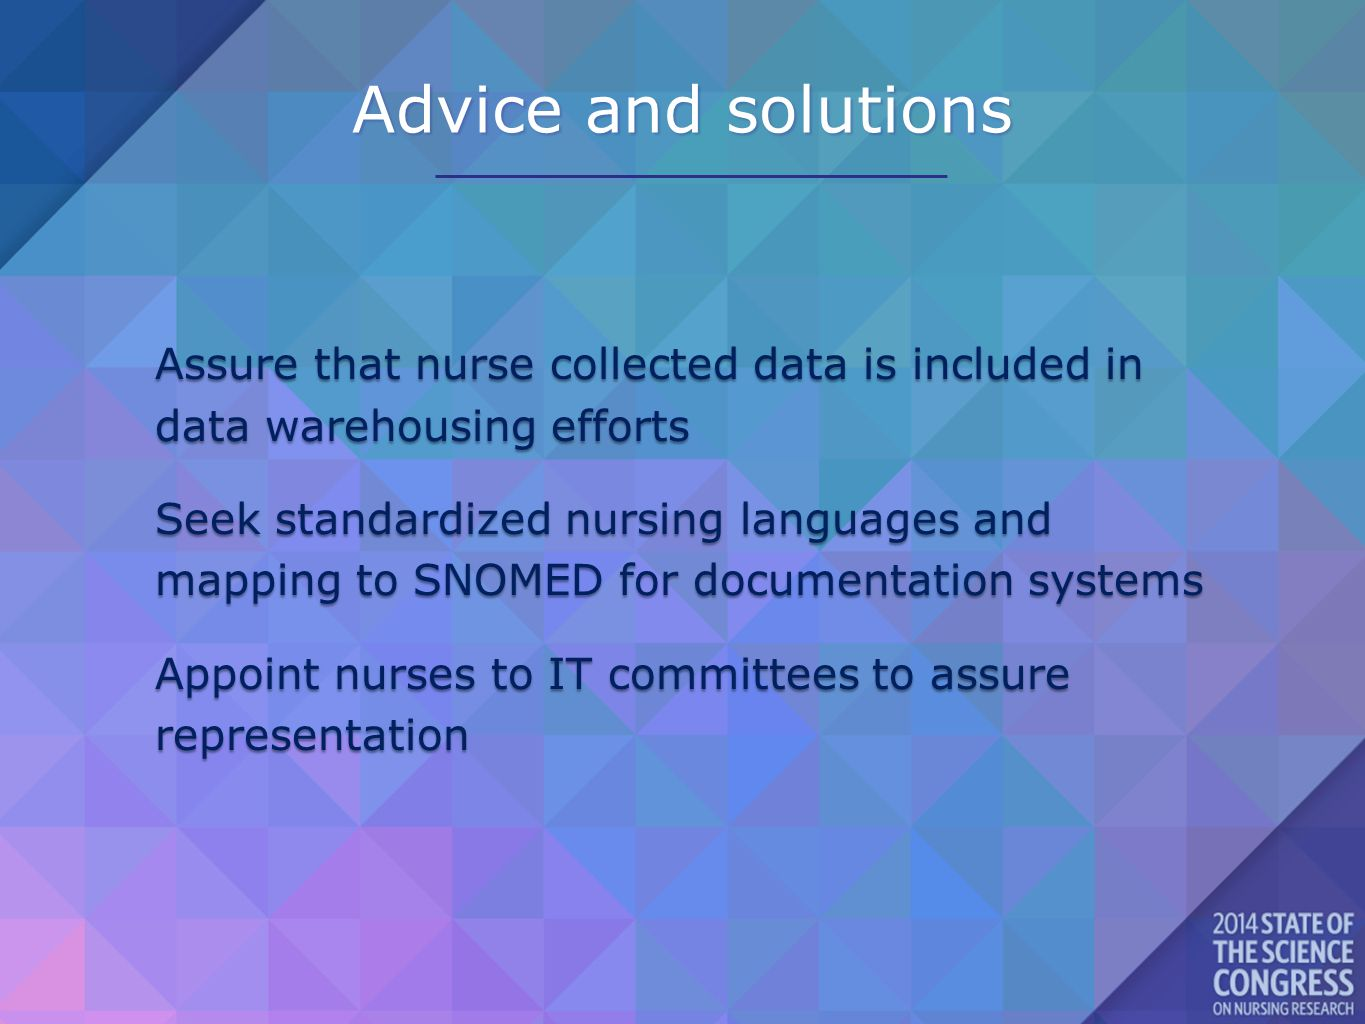 Advice and solutions Assure that nurse collected data is included in data warehousing efforts Seek standardized nursing languages and mapping to SNOMED for documentation systems Appoint nurses to IT committees to assure representation